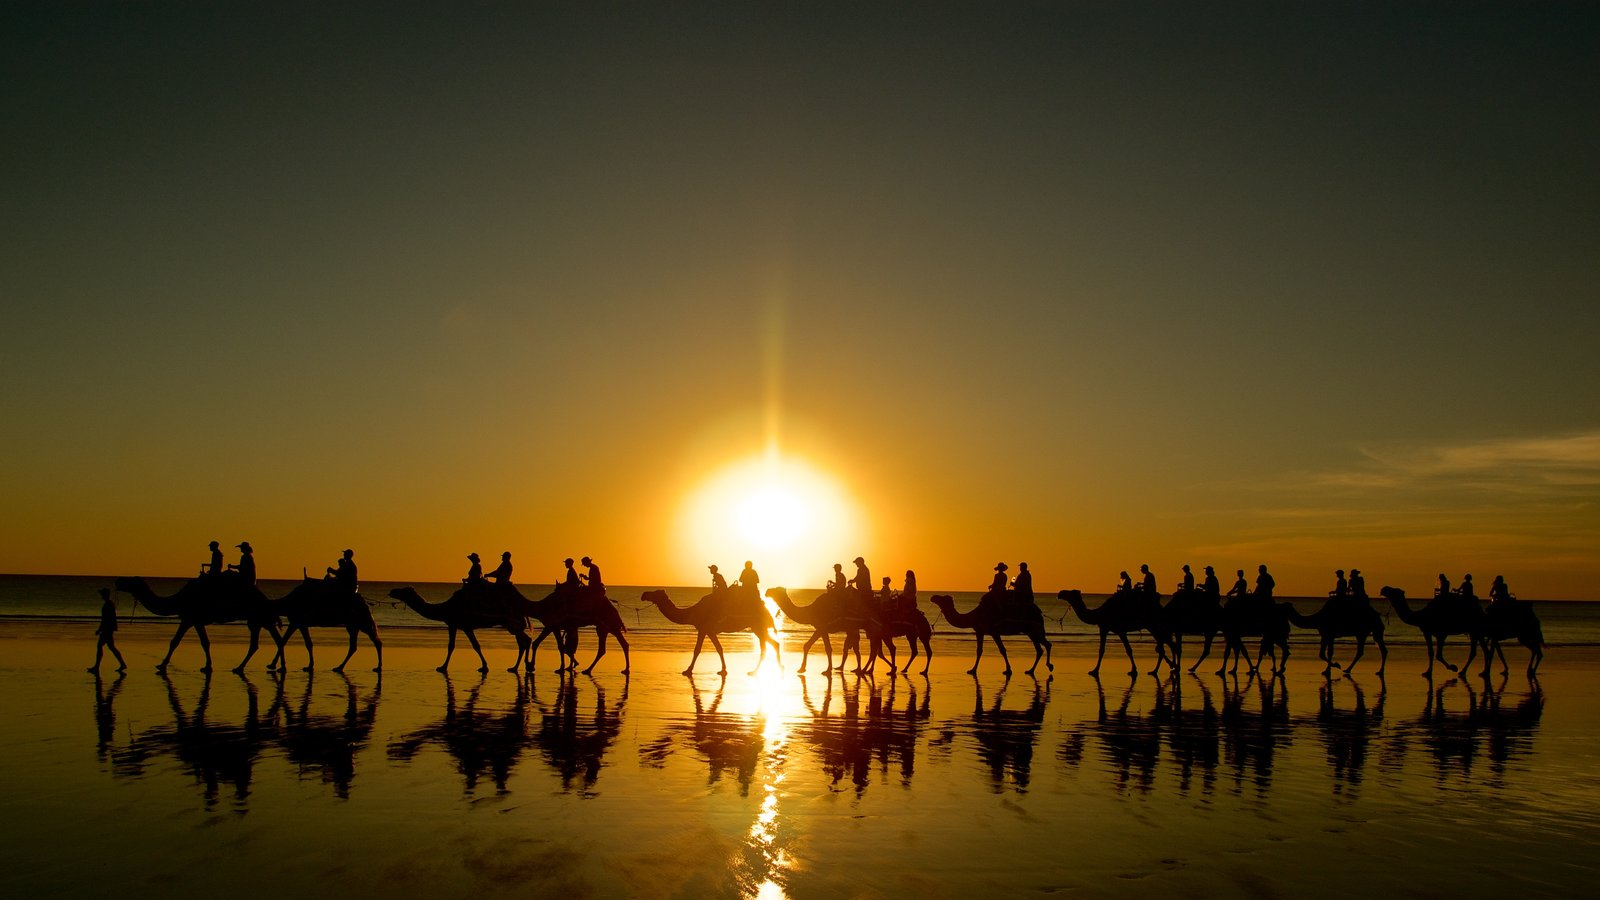 Cable Beach showing a sunset, a beach and land animals